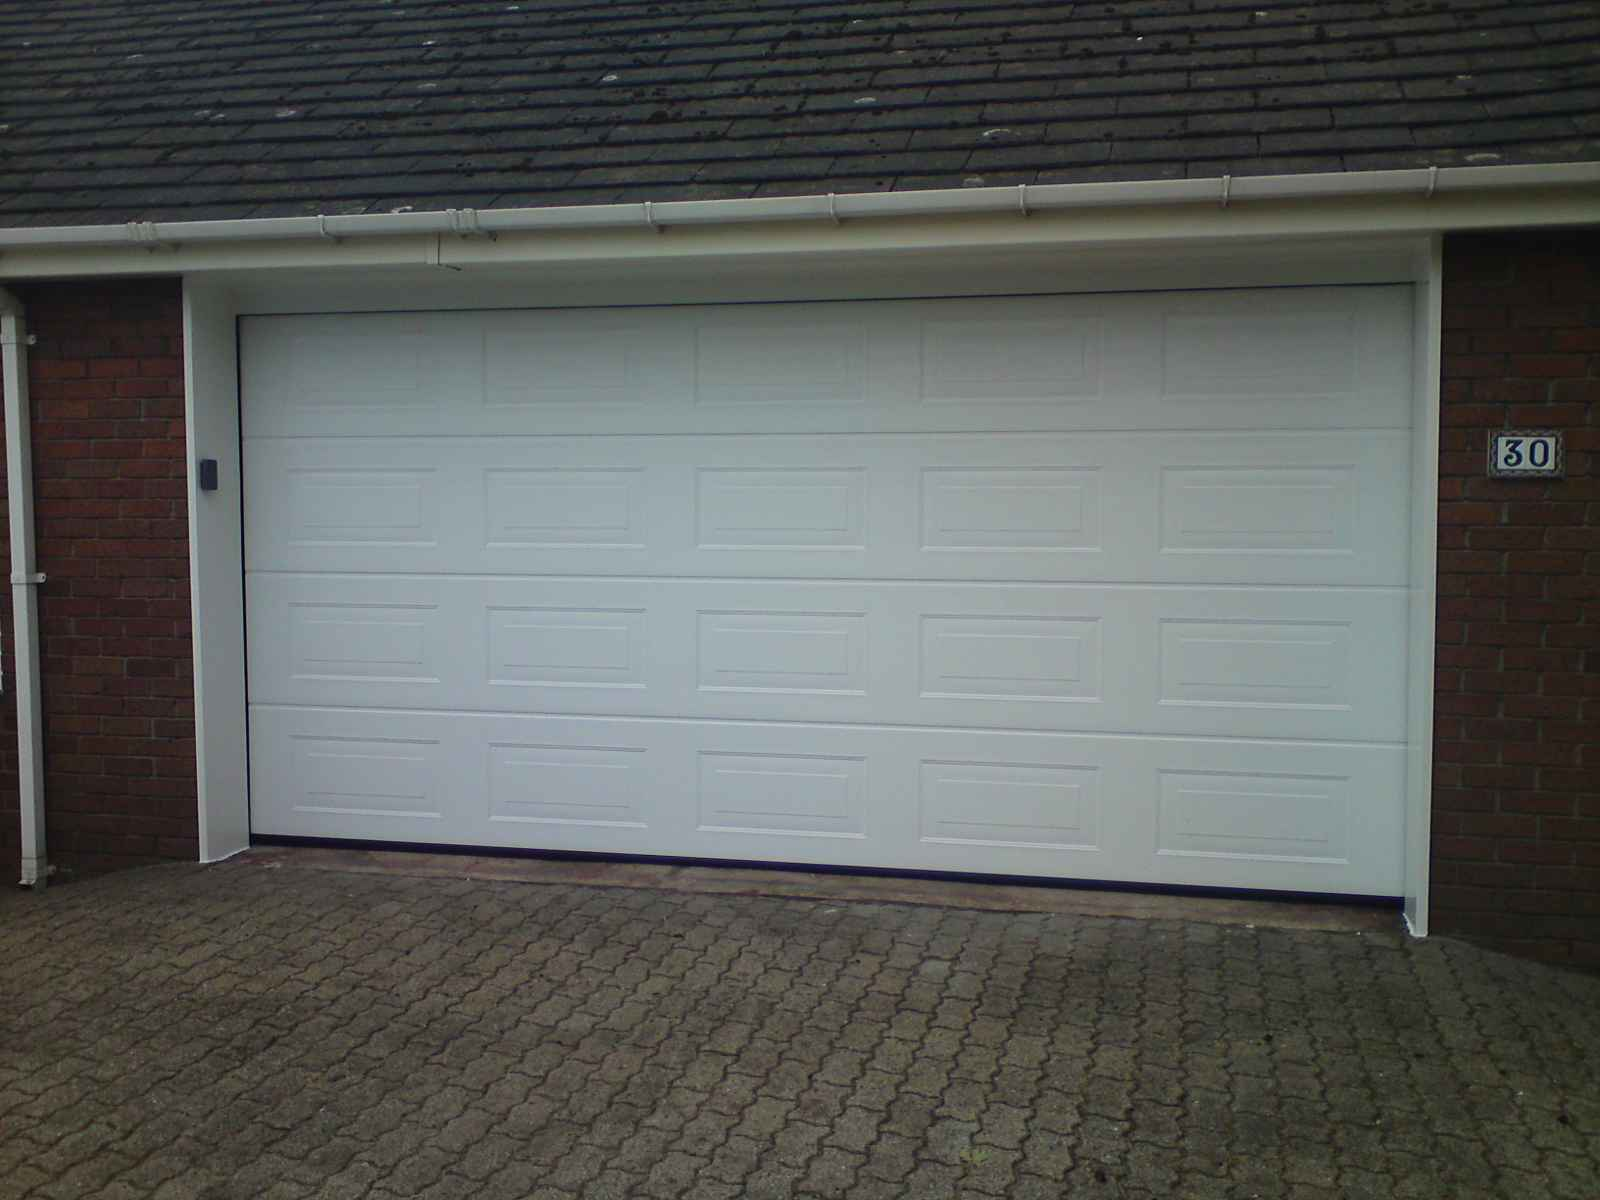 1200 #5B6970  Woodgrain Stylish Garage Door Clopay Coachman Affordable Garage Doors picture/photo Garages Doors 36391600